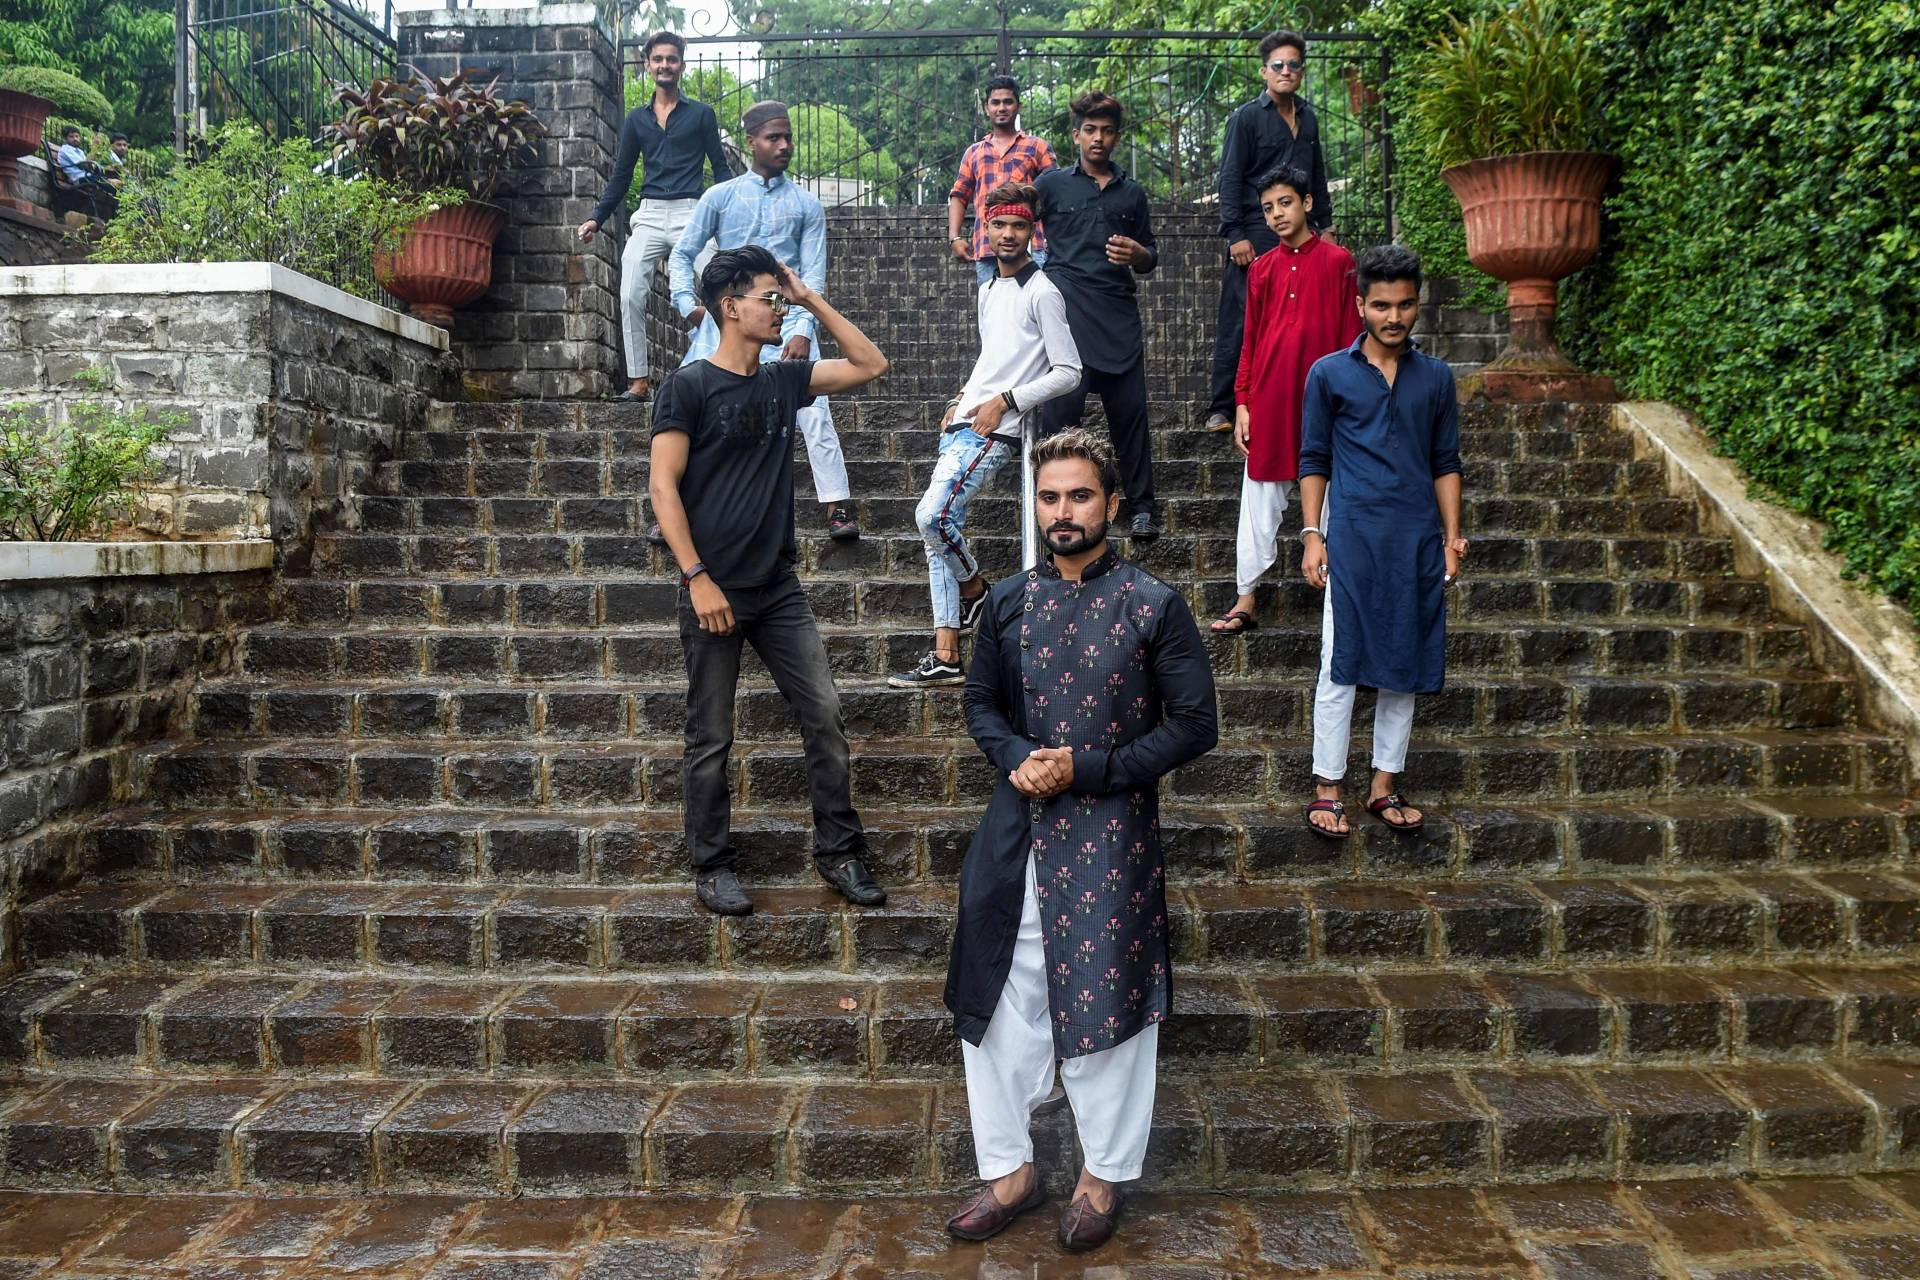 Mentor Akhtar Shaikh (front, centre) posing with his friends after recording a video for the video-sharing app TikTok, in Mumbai.